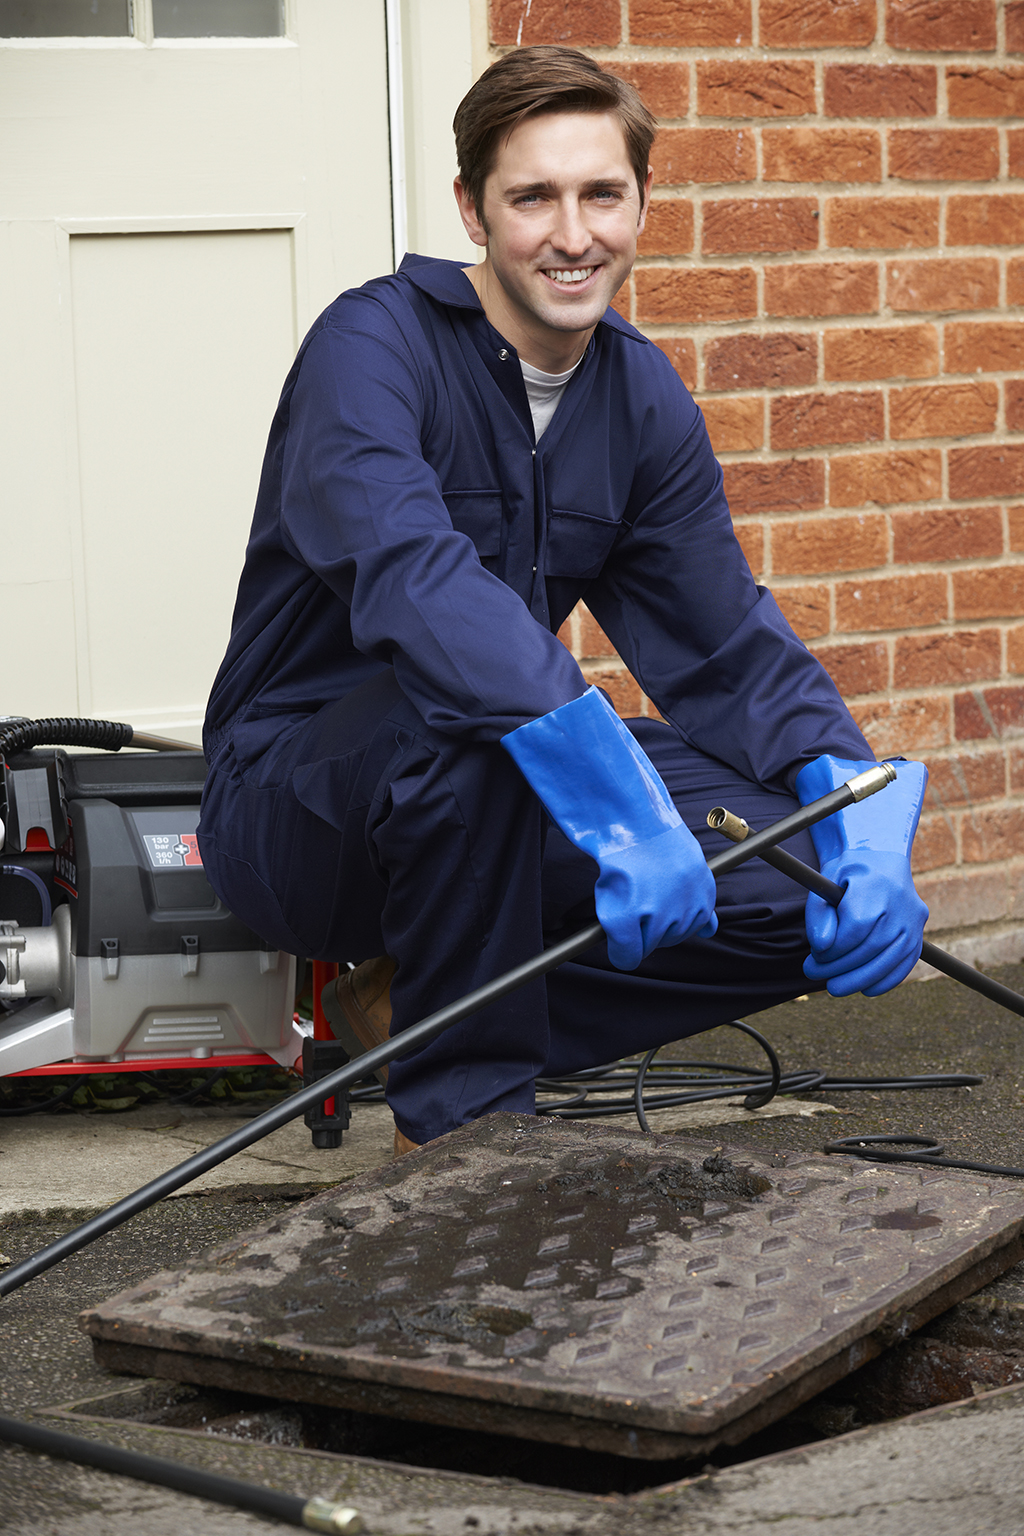 Choosing-the-Best-Drain-Cleaning-Services-and-Gas-Line-Repair-Professionals-in-the-St.-Paul,-MN-Area